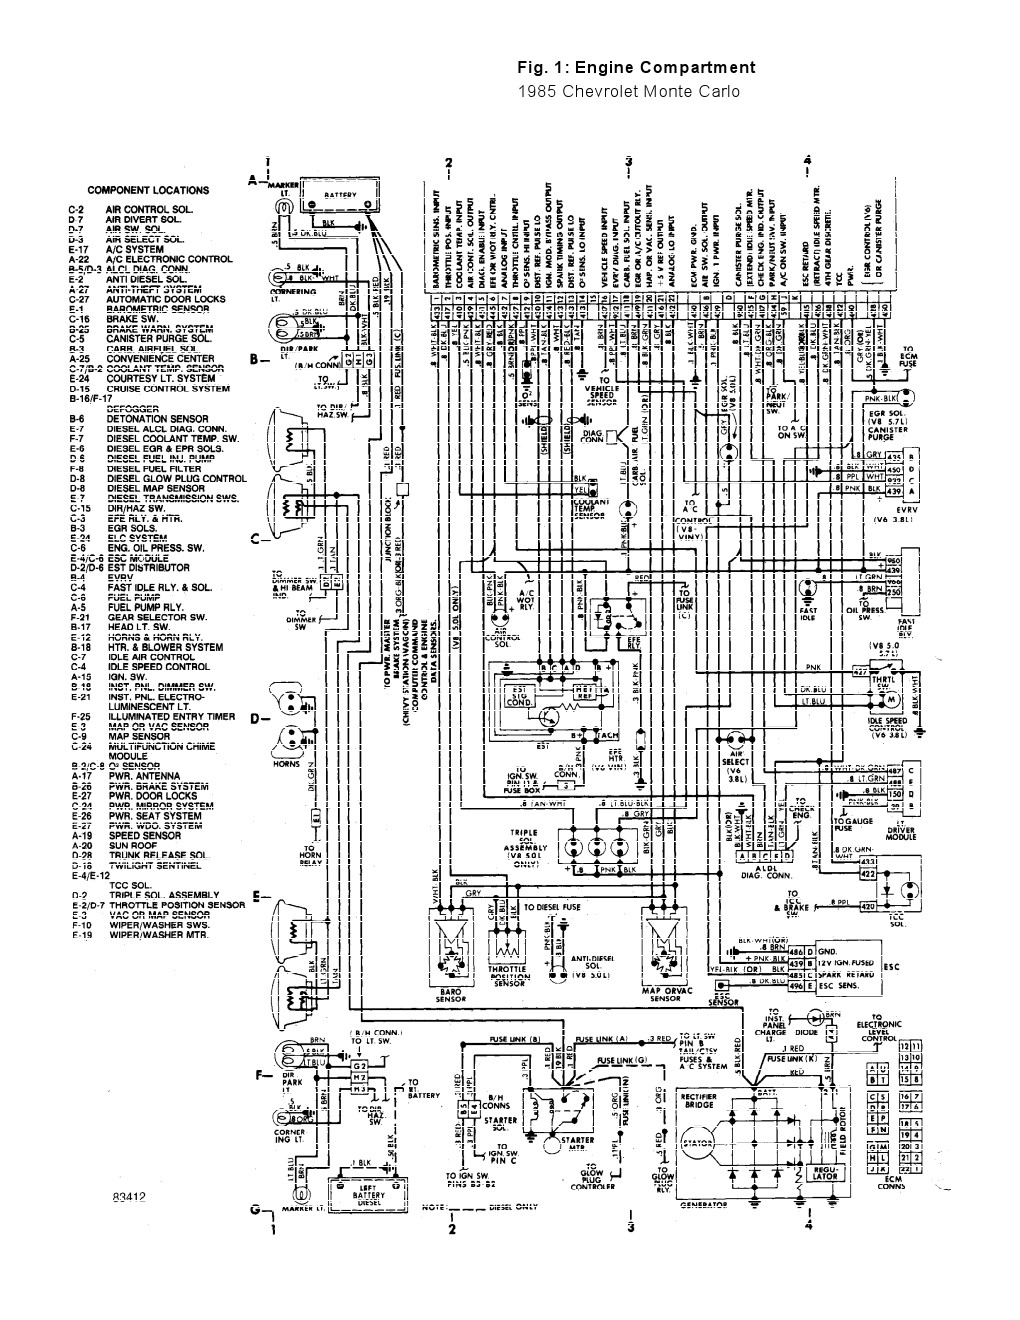 2002 monte carlo engine diagram. Black Bedroom Furniture Sets. Home Design Ideas